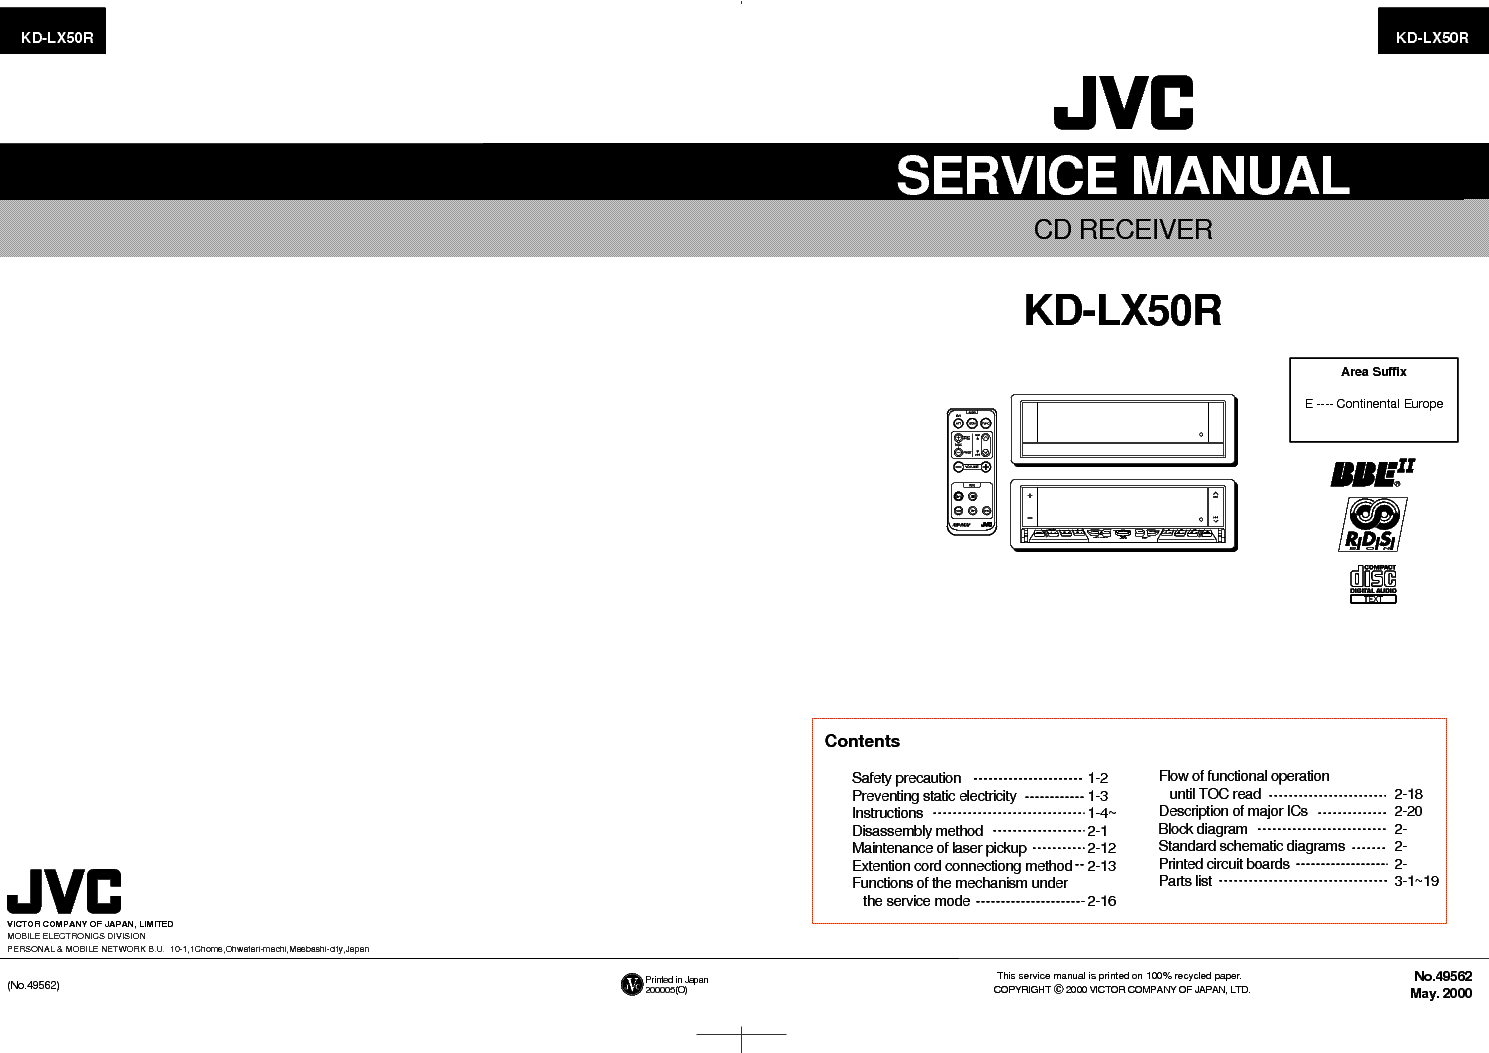 jvc_kd lx50r.pdf_1 jvc kd g220 wiring diagram wiring diagram images jvc kd g220 wiring diagram at soozxer.org